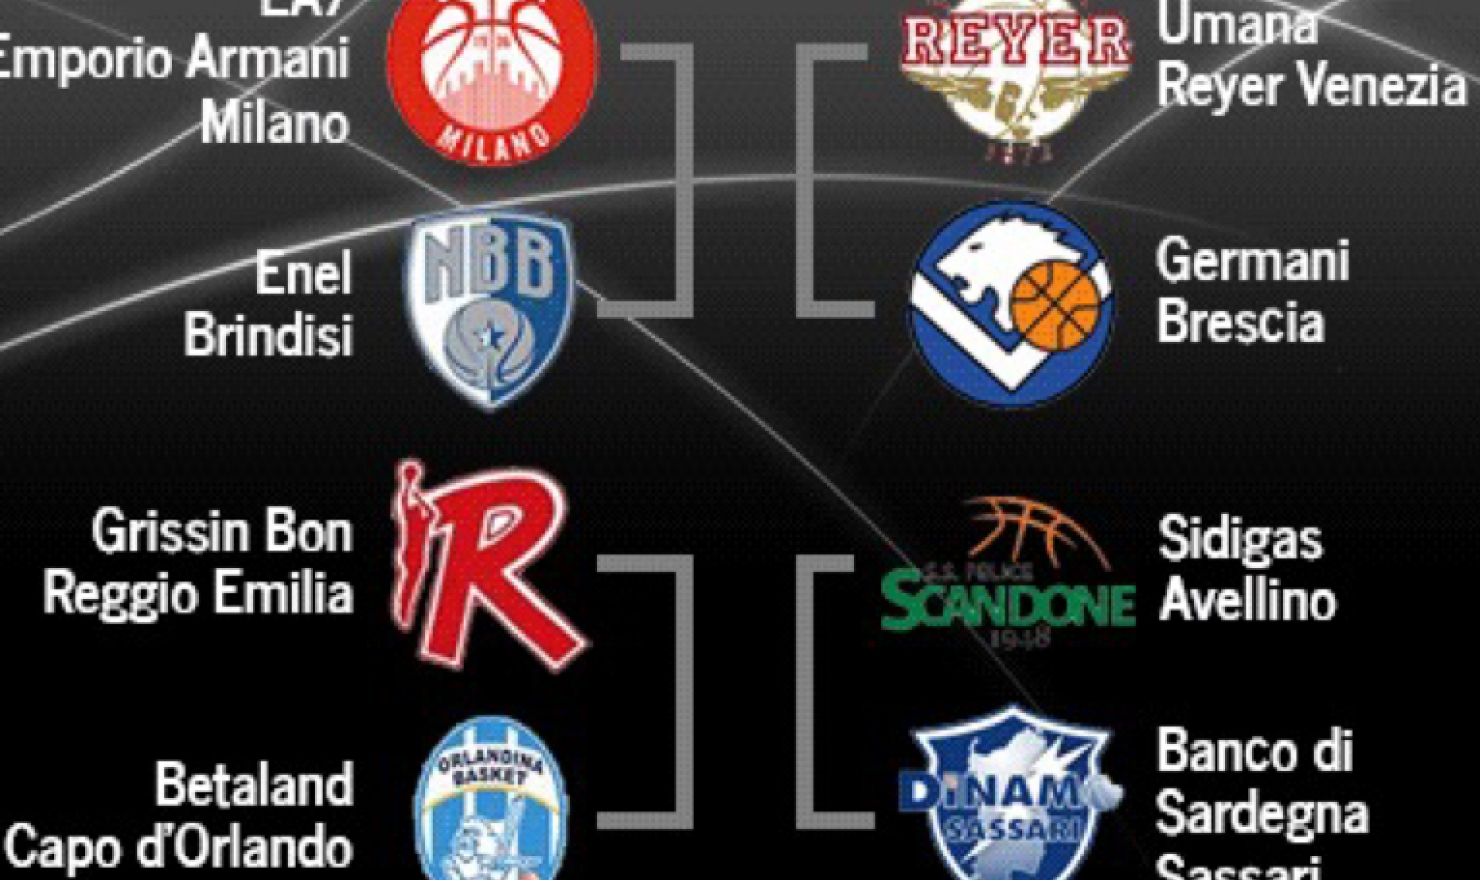 Calendario Grissin Bon.Final Eight 2017 Calendario E Orari Dinamo Sassari